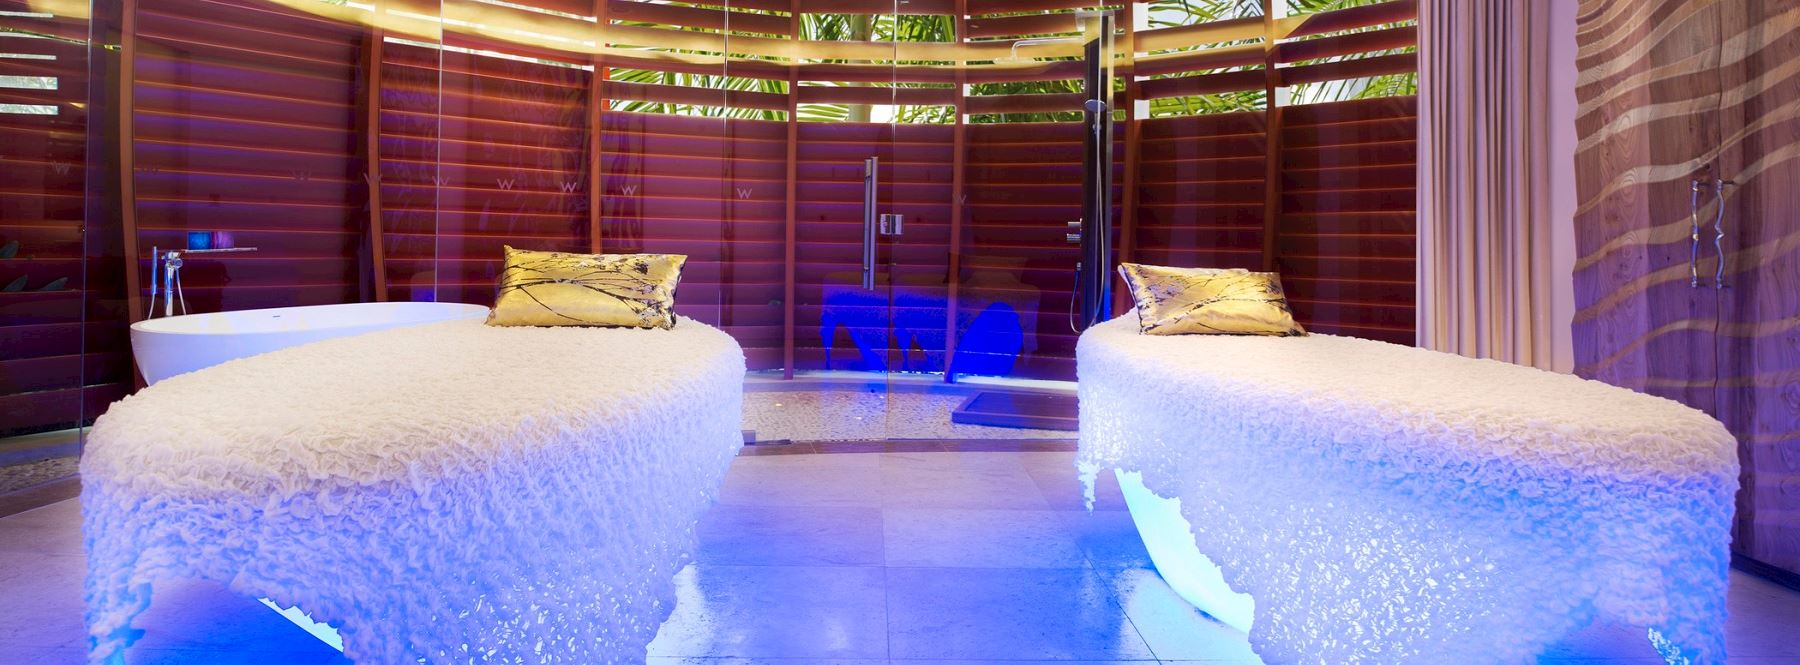 Away Spa duo delight treatment room